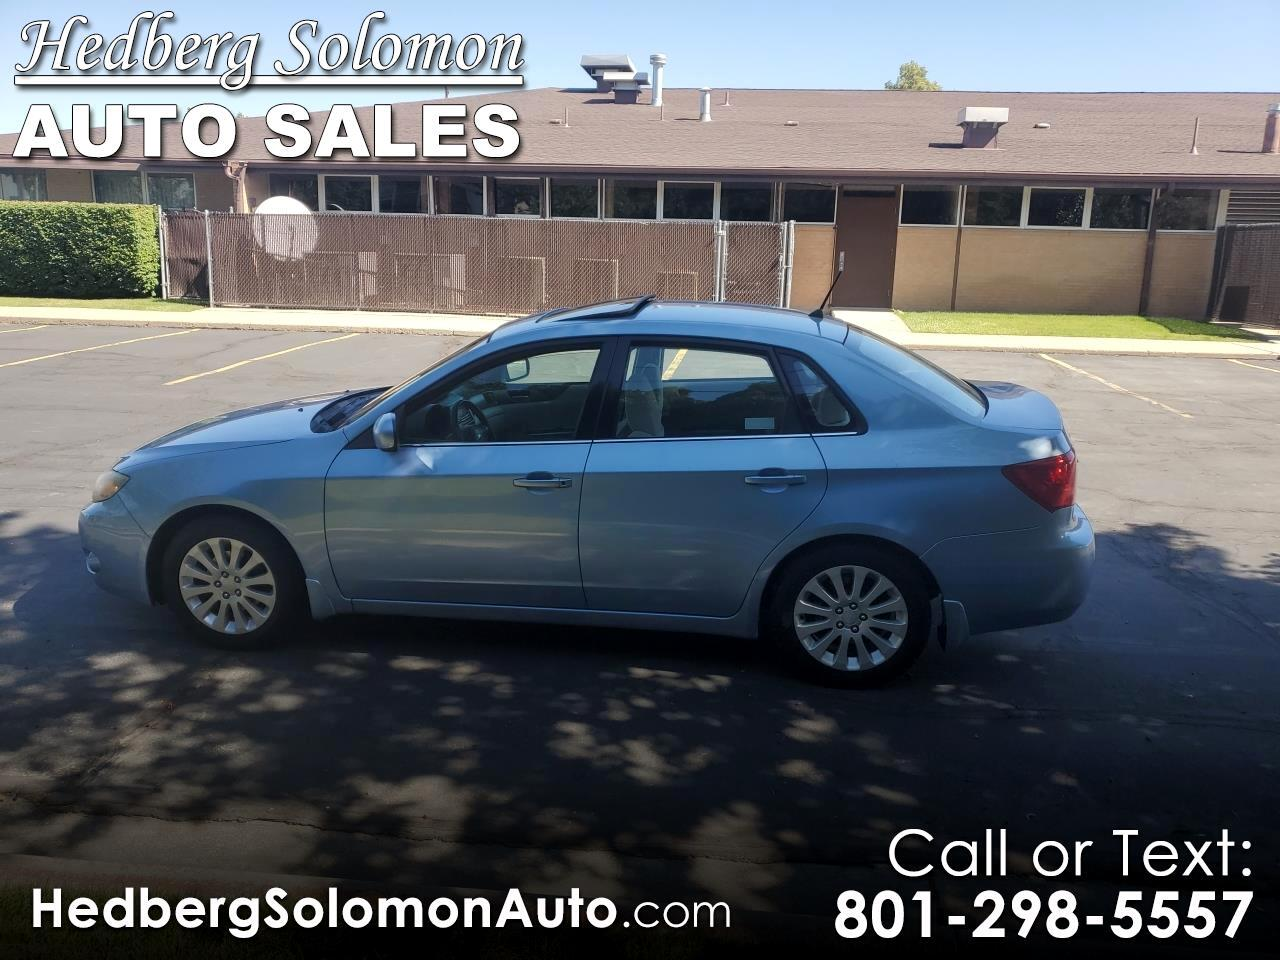 2011 Subaru Impreza Sedan 4dr Man 2.5i Premium w/Pwr Moonroof Value Pkg